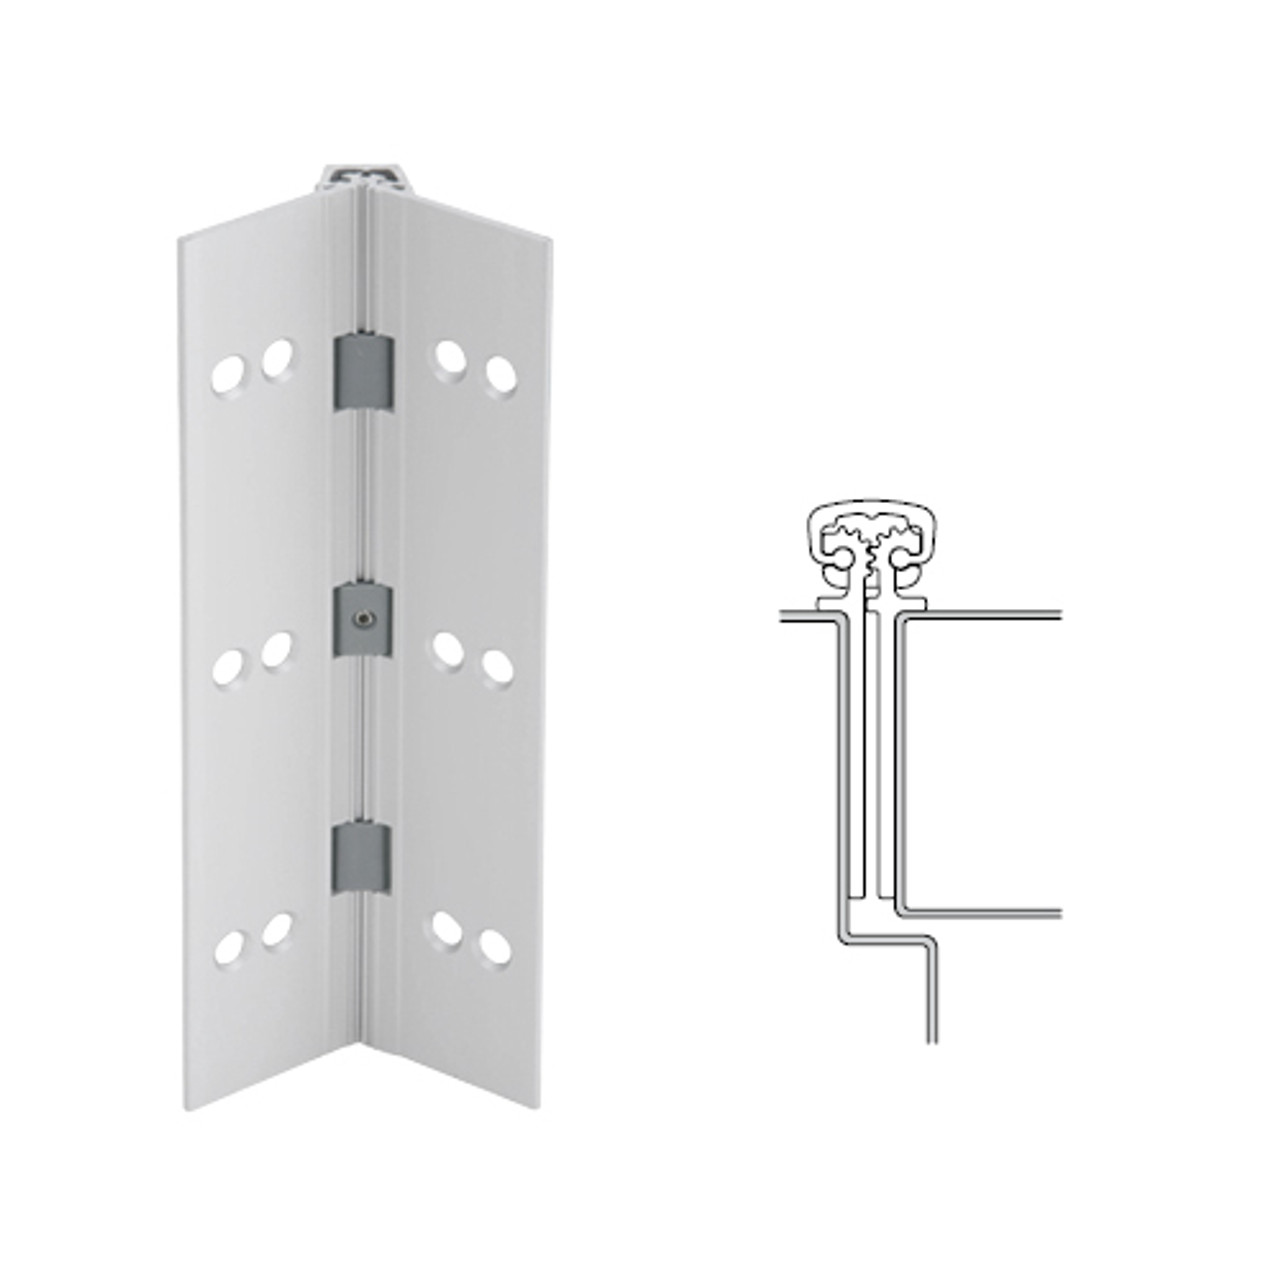 027XY-US28-120-TFWD IVES Full Mortise Continuous Geared Hinges with Thread Forming Screws in Satin Aluminum